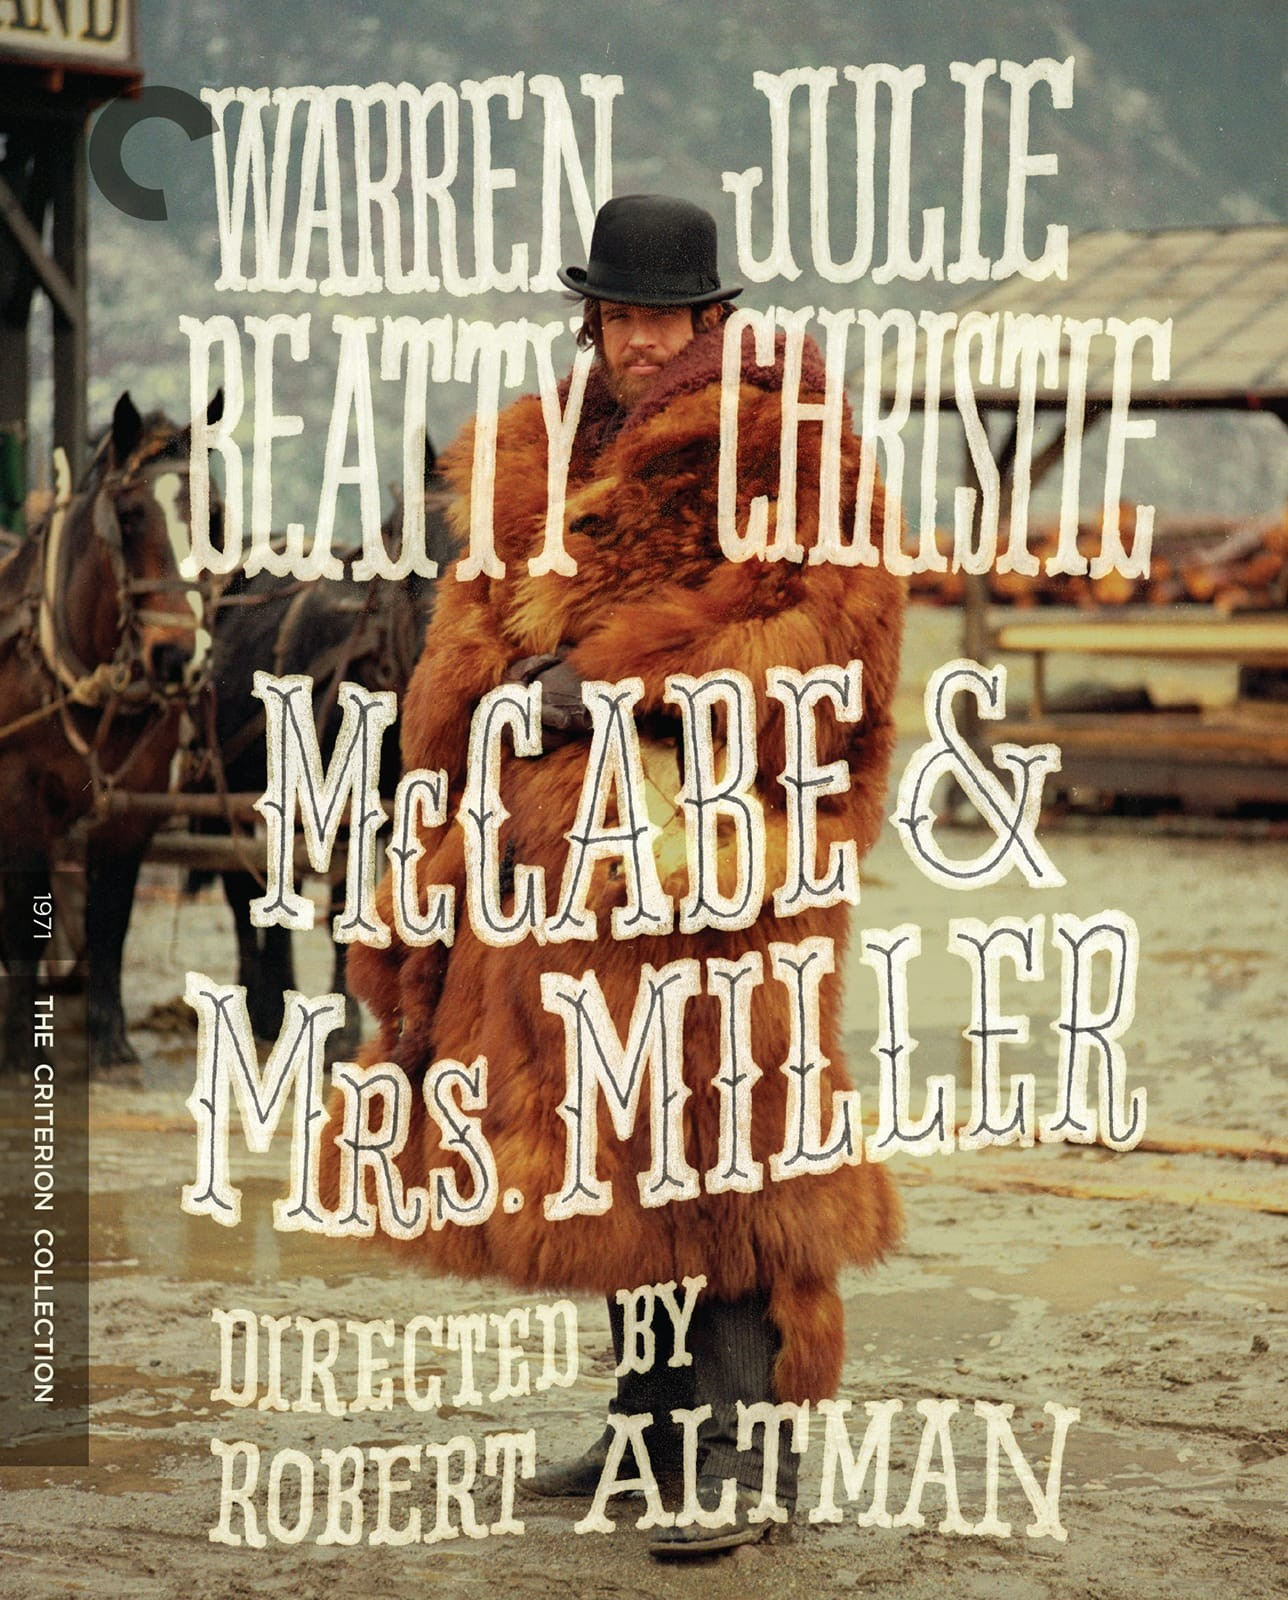 Image result for mccabe and mrs miller criterion poster